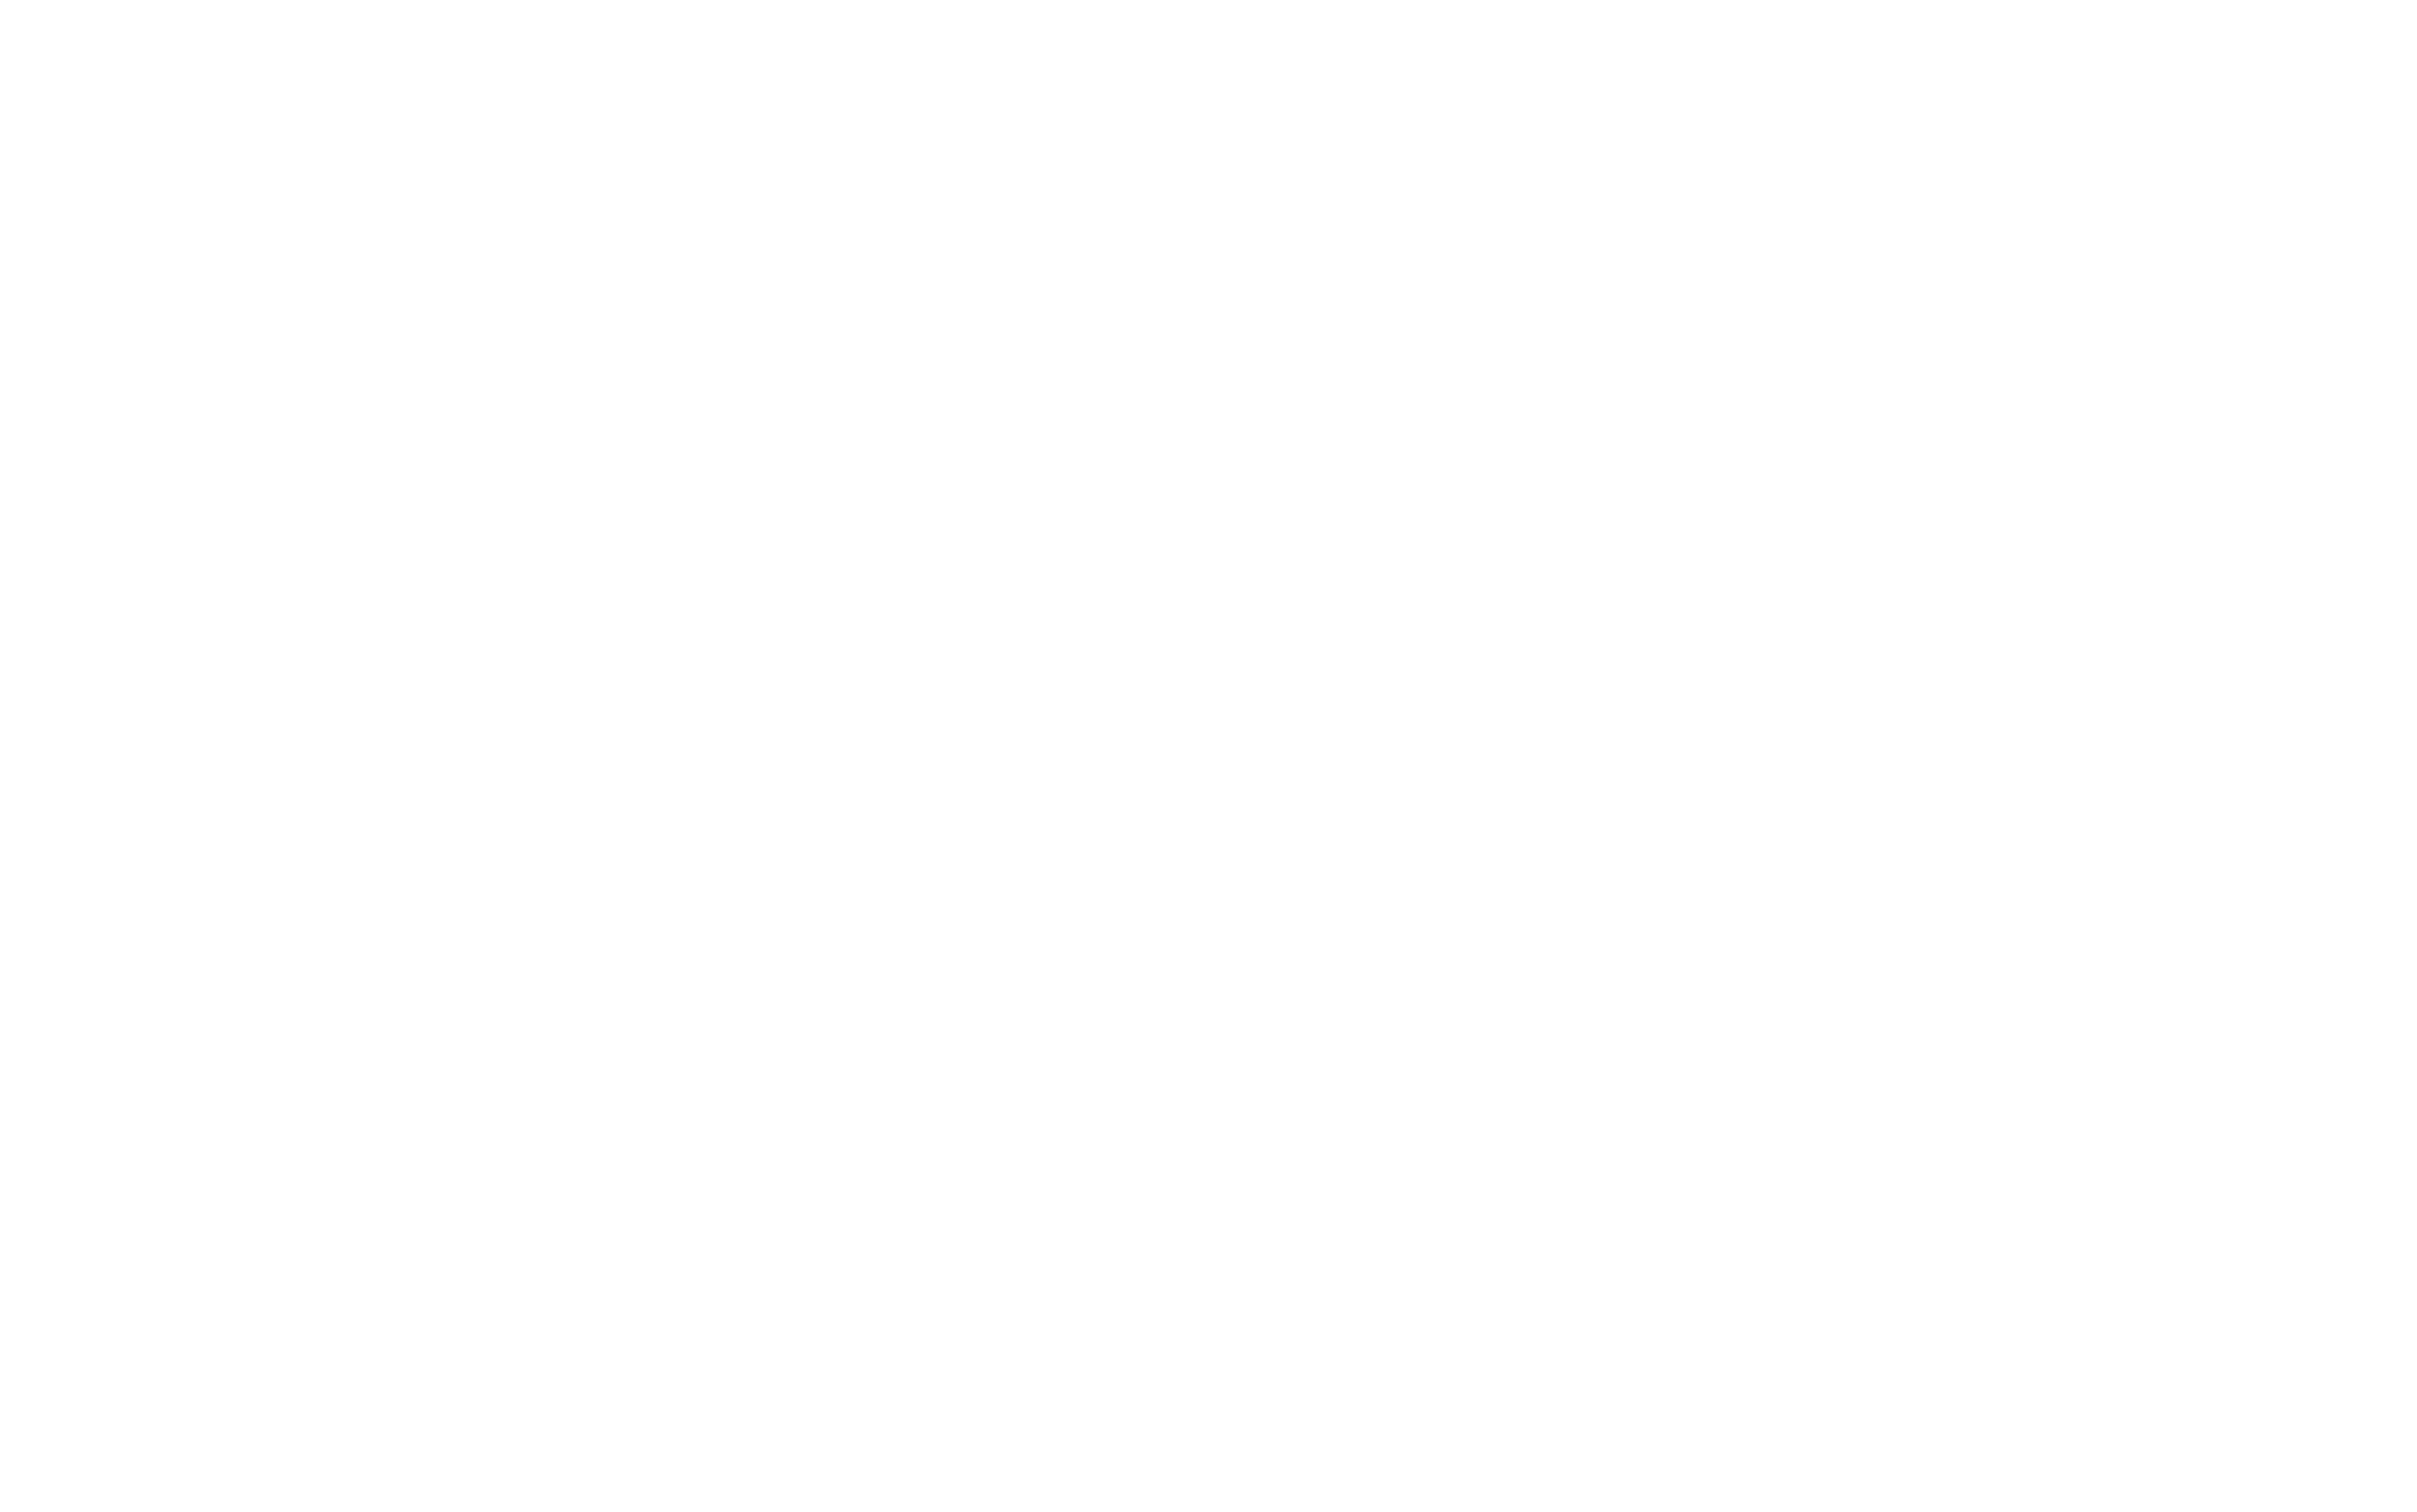 Harkson_Homes_logo_real_estate_icon_white